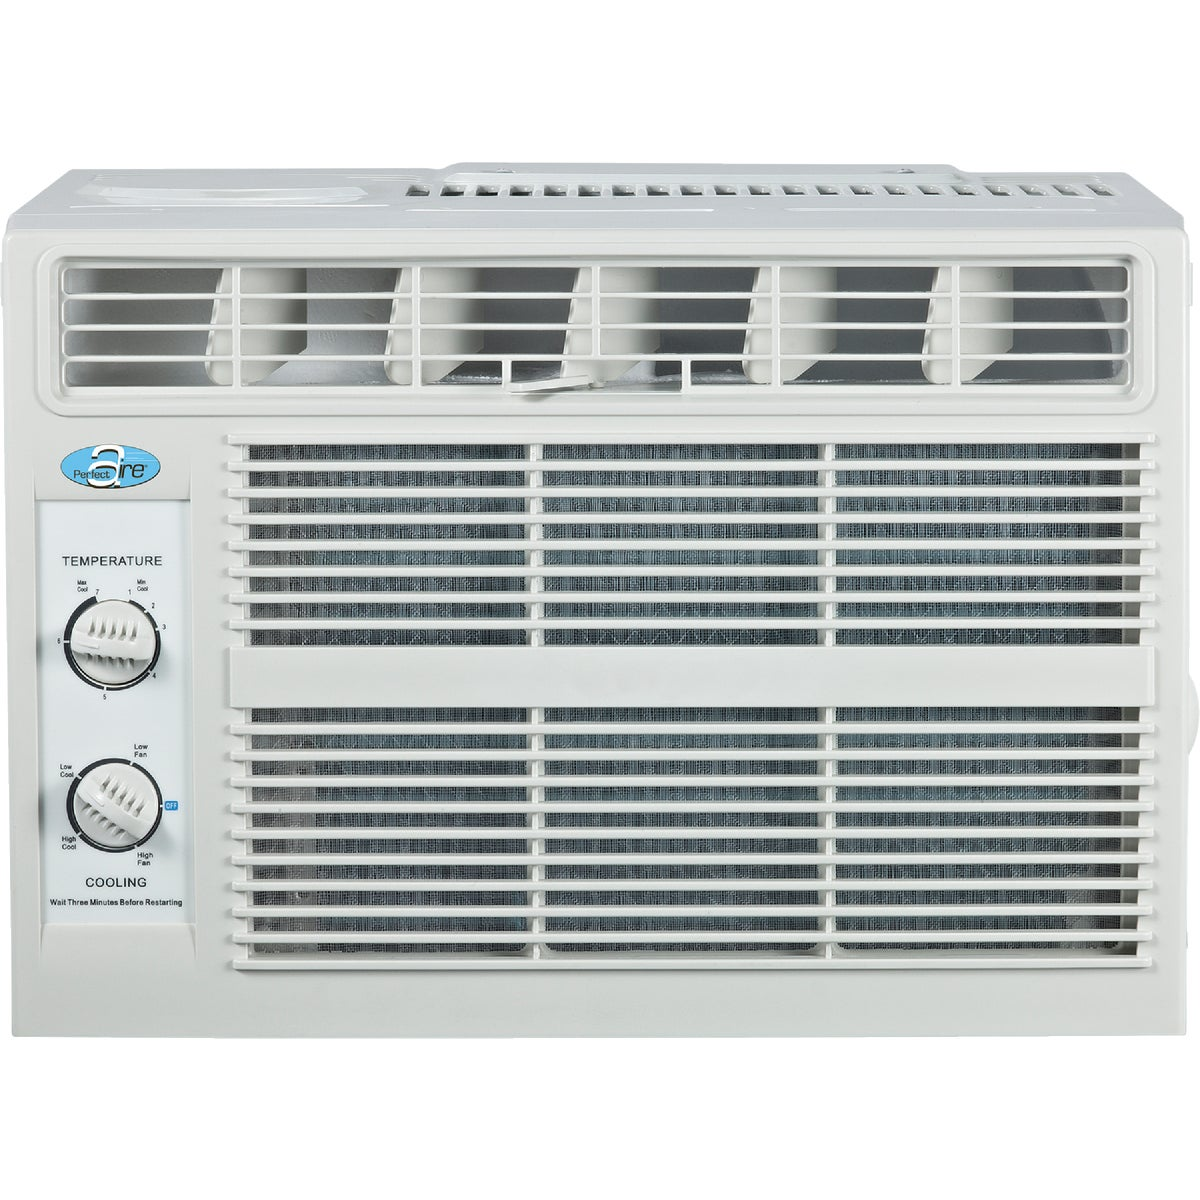 5000BTU AIR CONDITIONER - PAC5000 by Perfect Aire Import